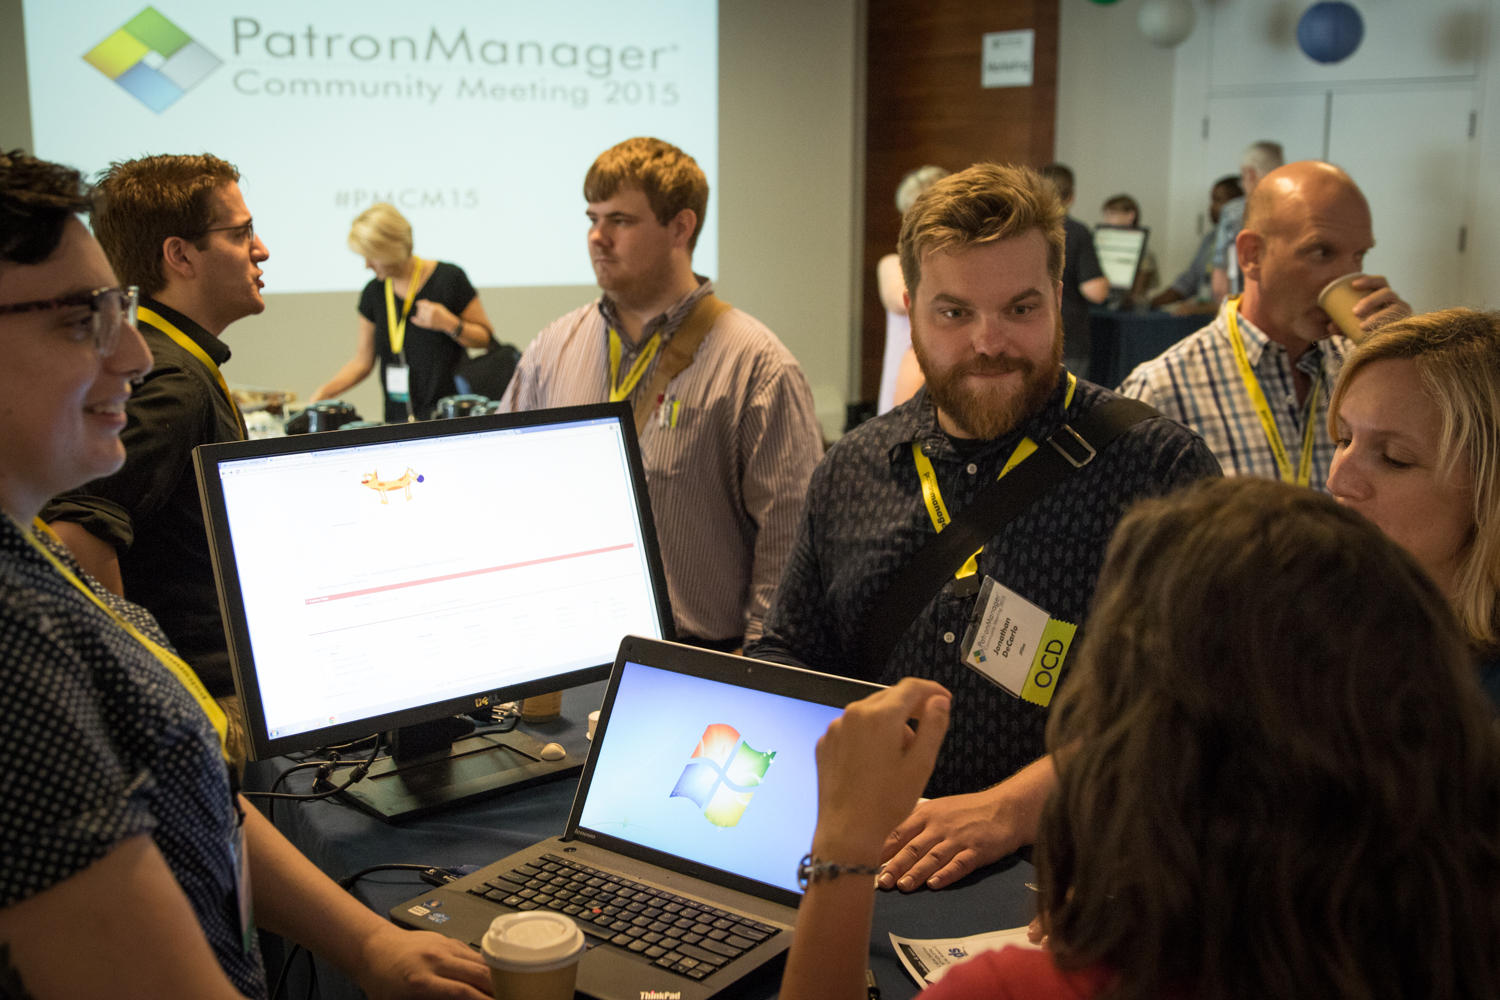 Patron Technology, Patron Manager Community Meetup, American Red Cross Greater New York